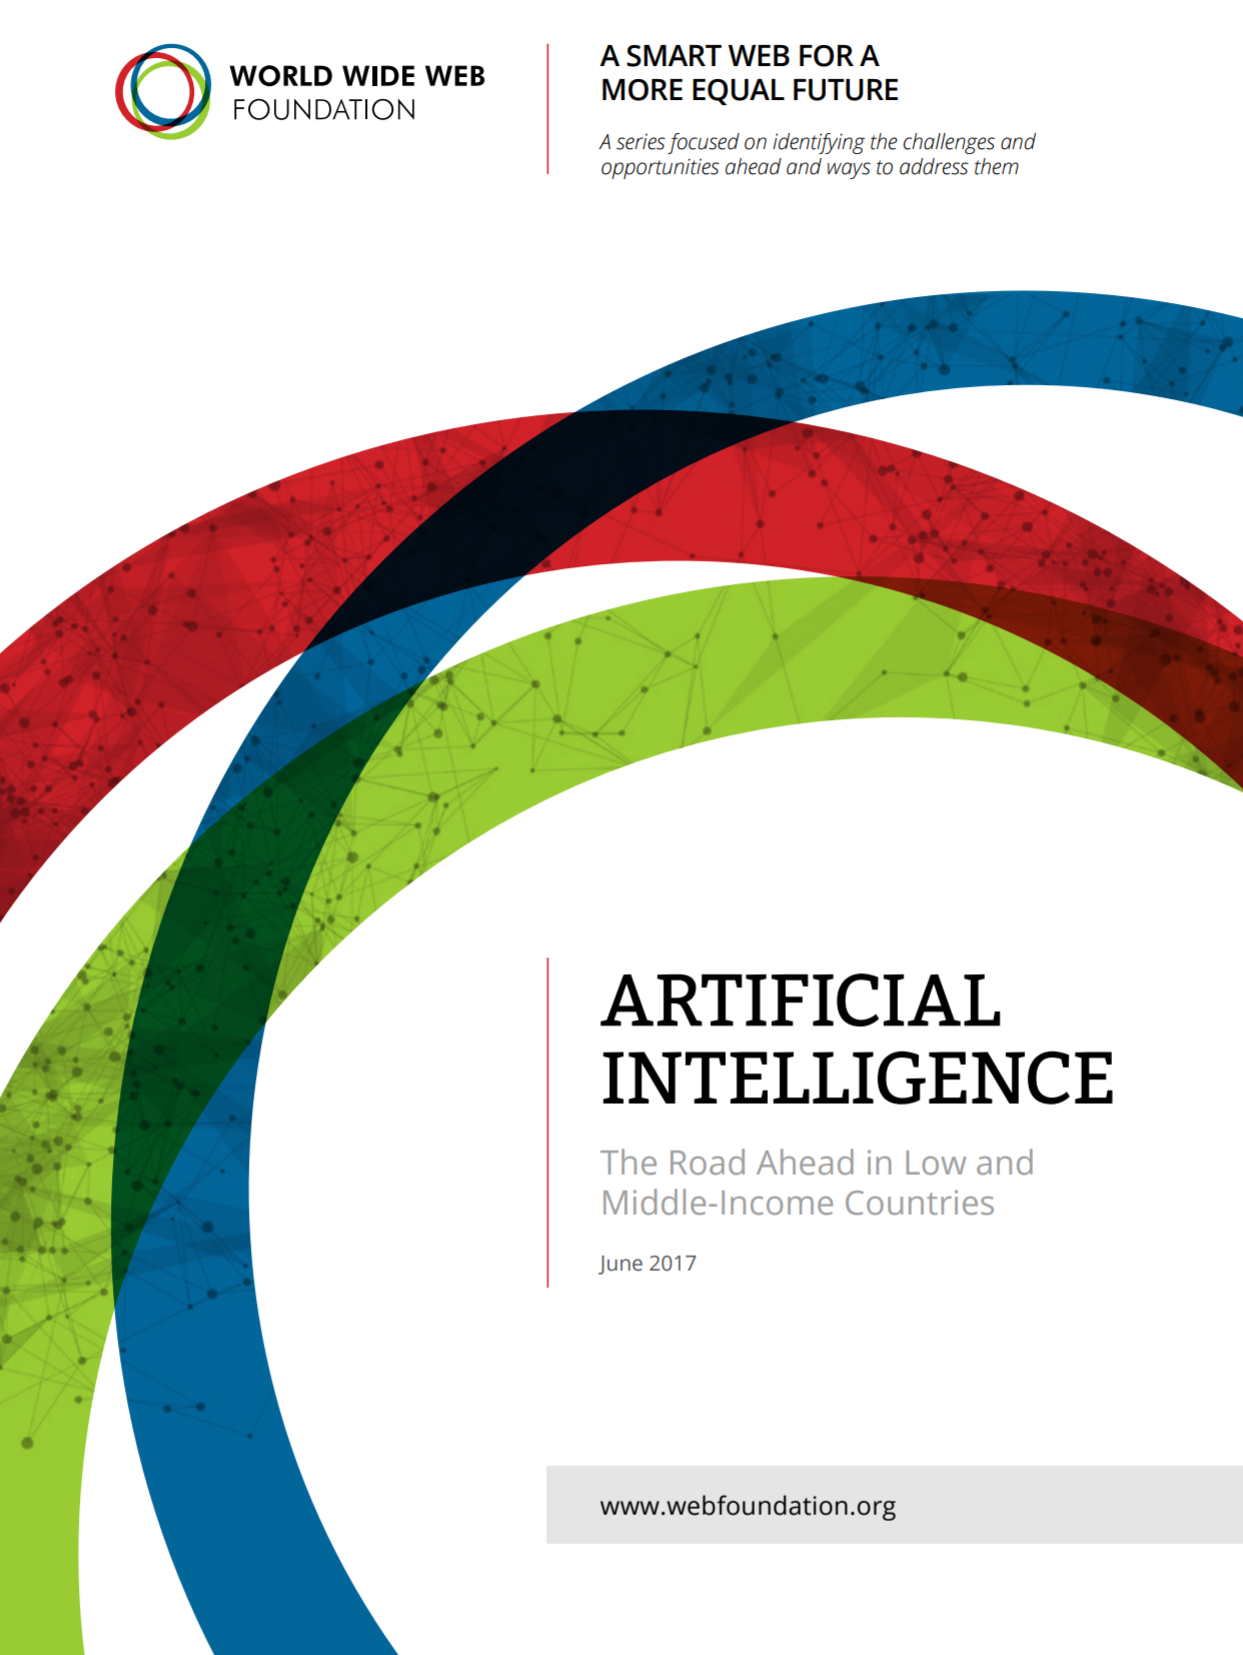 Market Research Companies >> Artificial Intelligence: The Road Ahead in Low and Middle ...